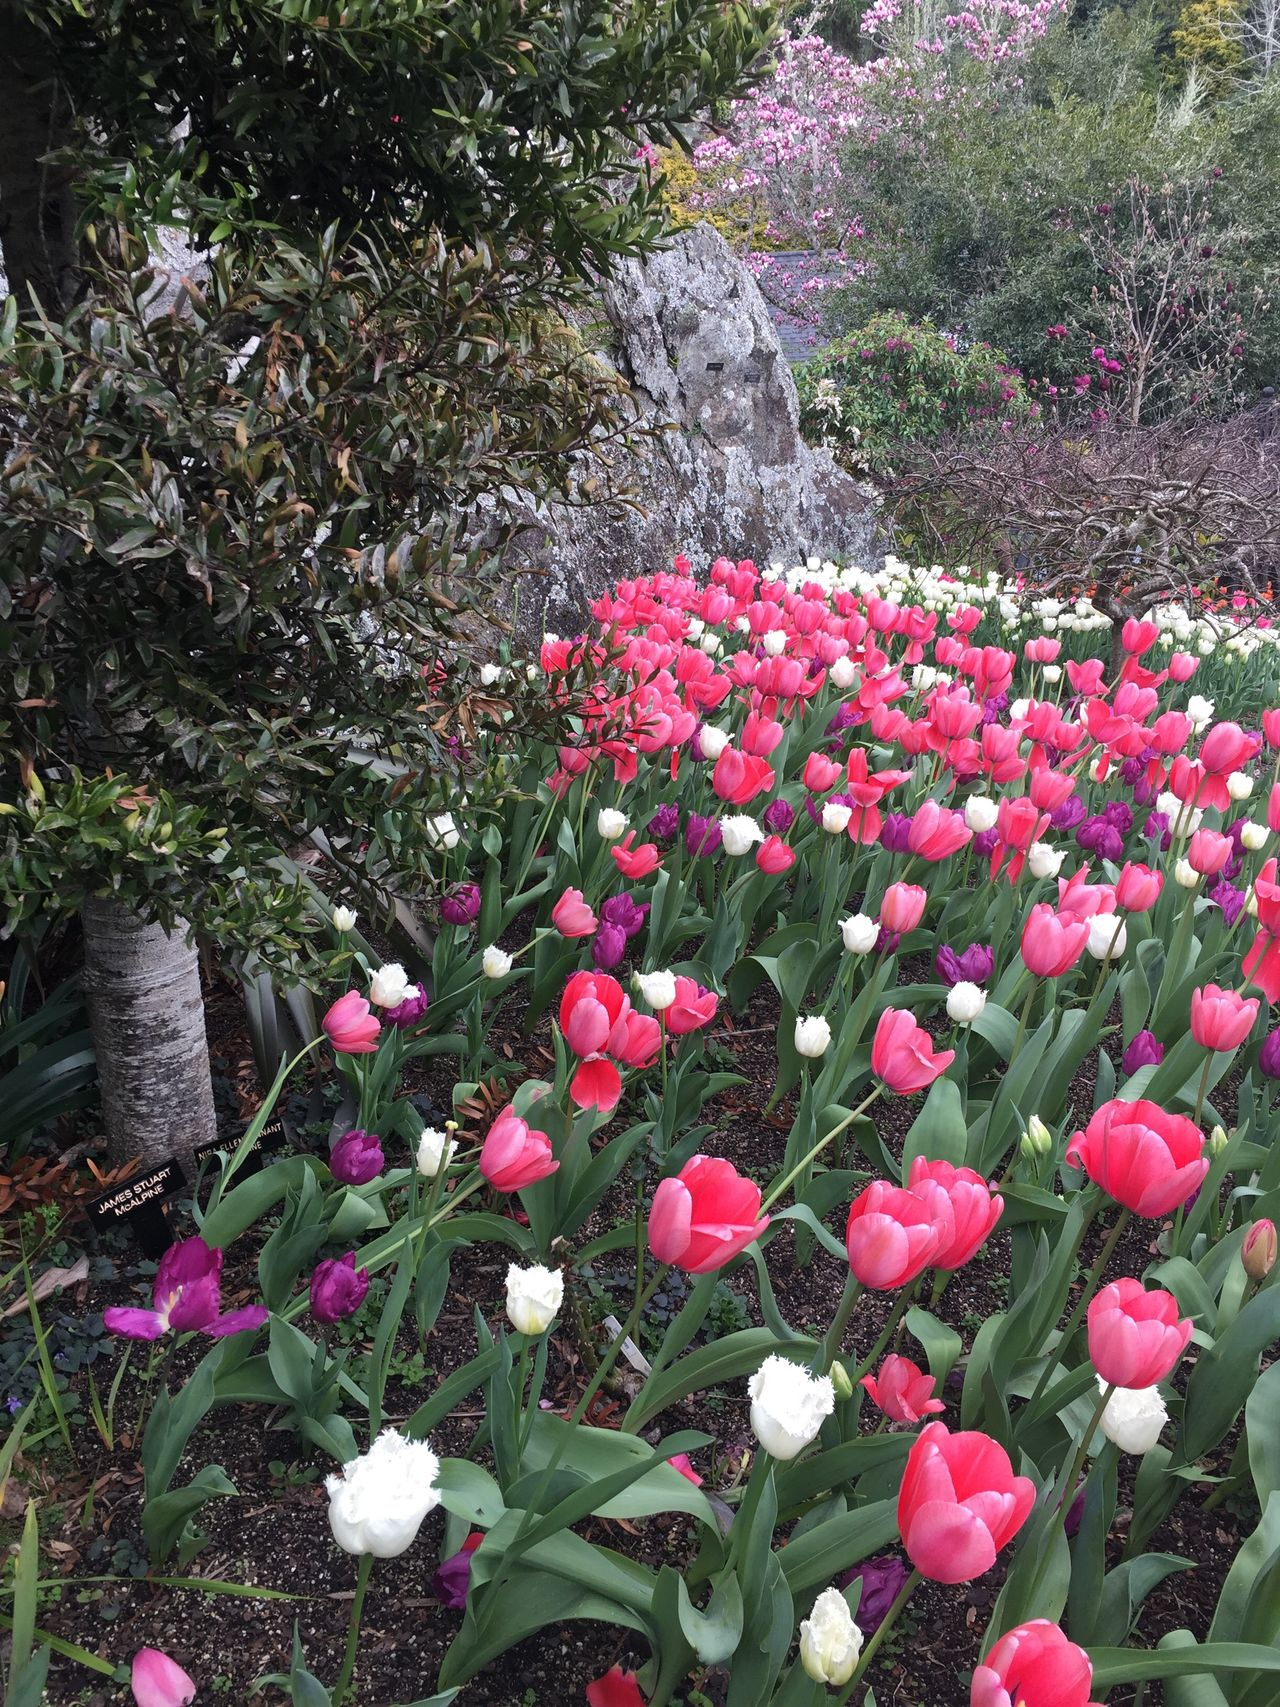 Tulips.. Flower Growth Nature Beauty In Nature Plant Petal Freshness Fragility Pink Color No People Blooming Flower Head Day Outdoors Rhododendron